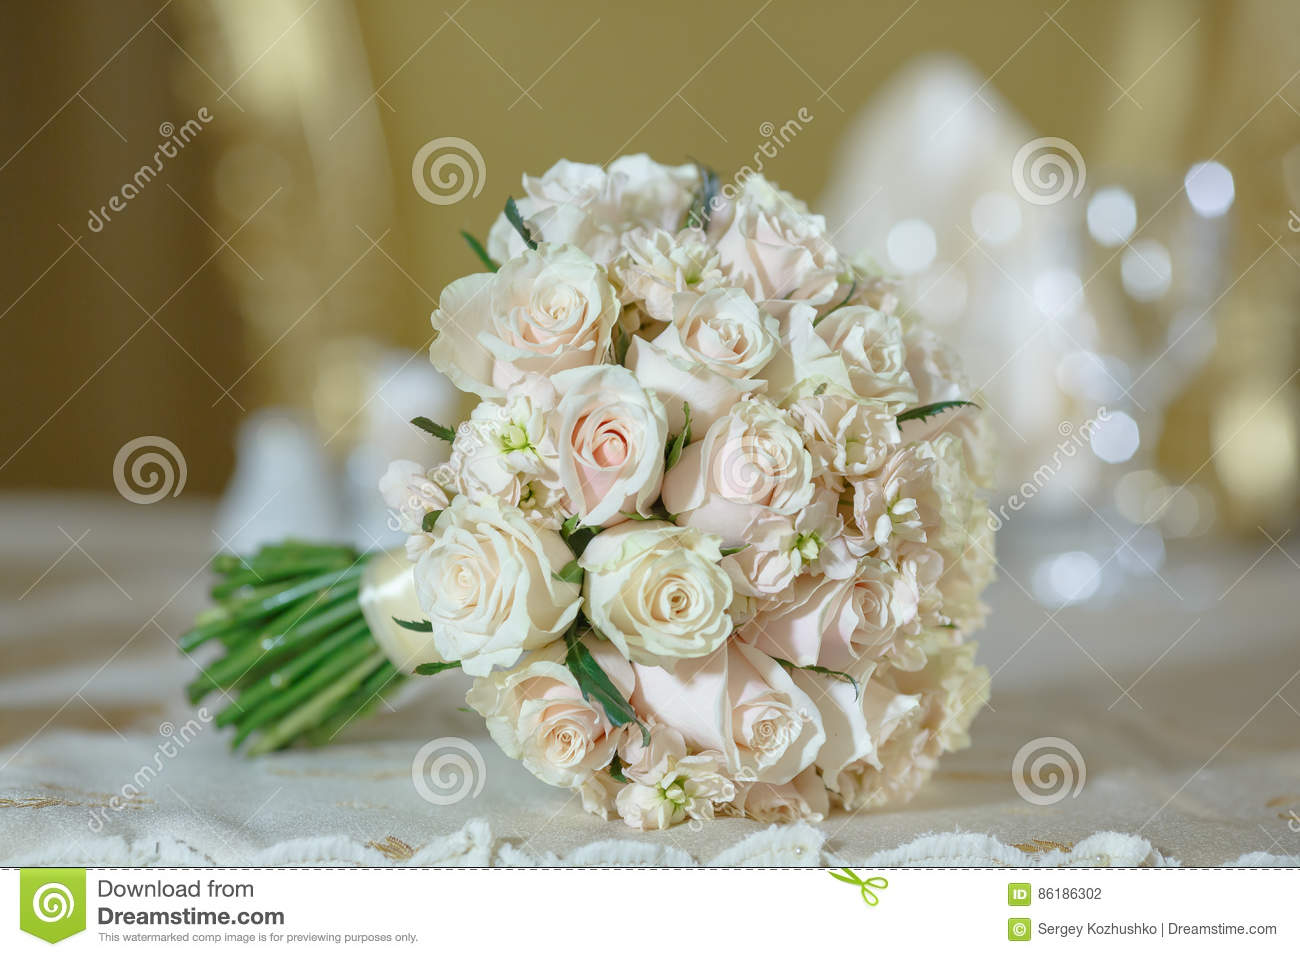 Roses Peony Wedding Bouquet White Gold Color Decoration Stock Photo